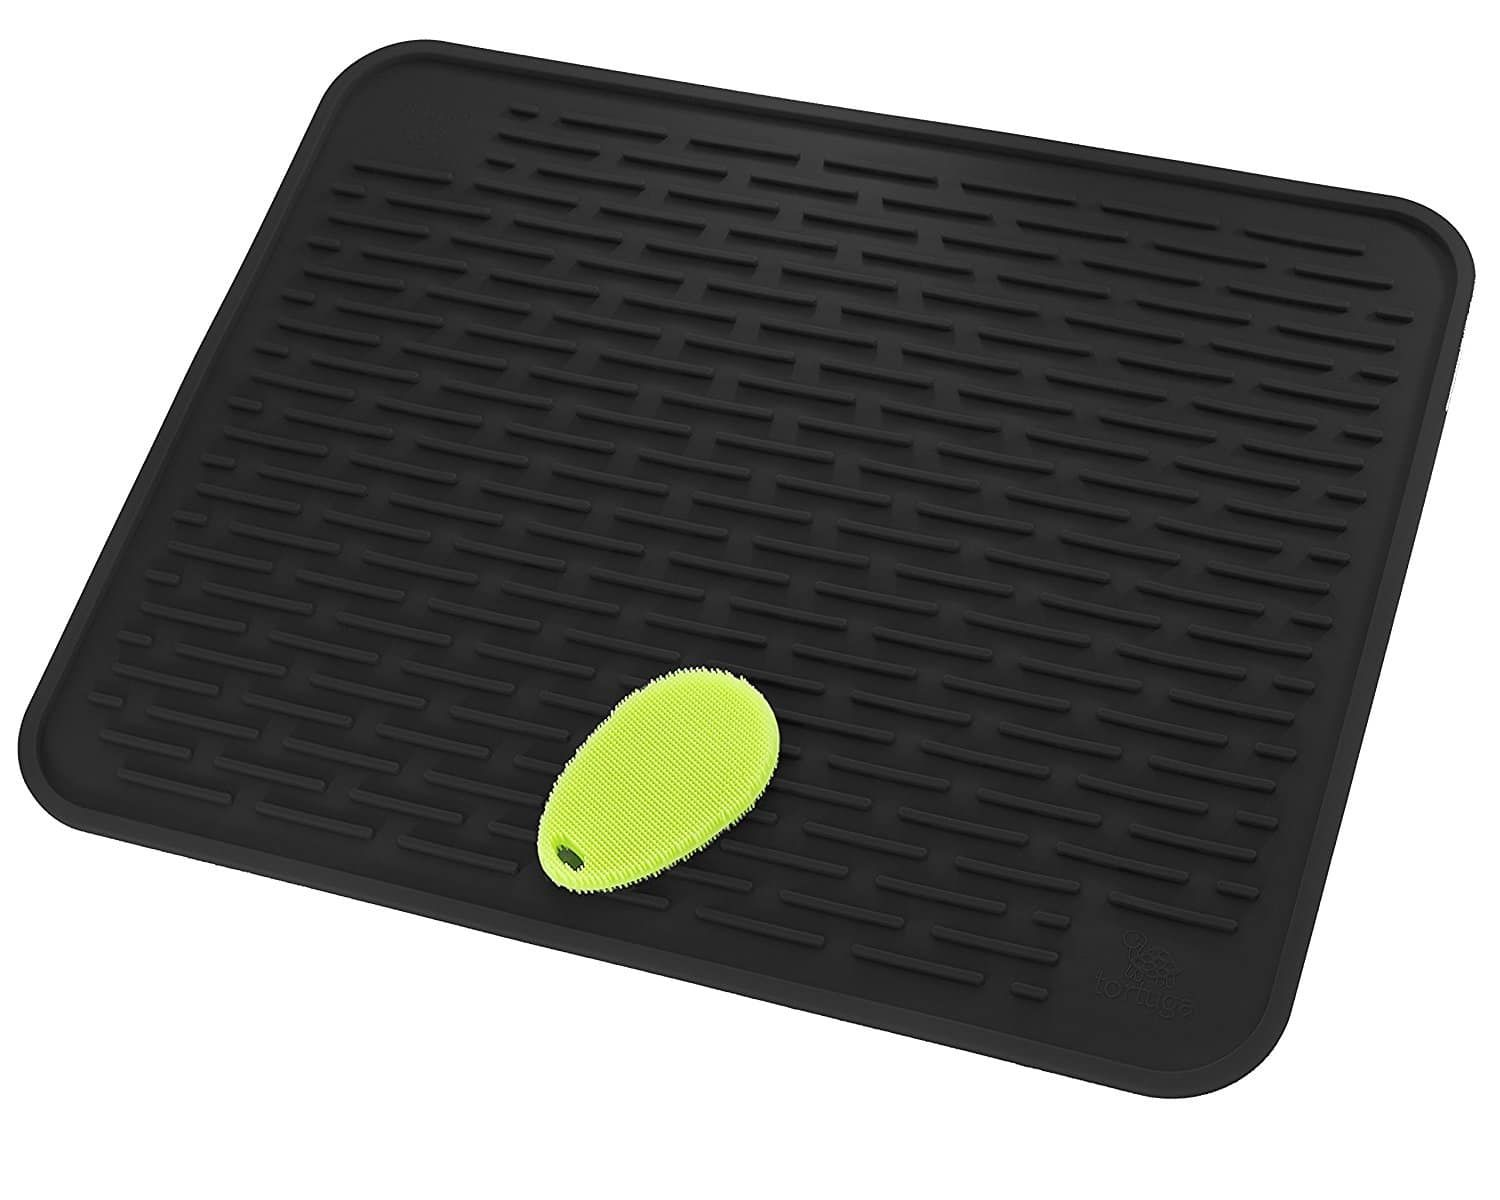 Top 10 Best Silicone Dish Drying Mats In 2020 Reviews Hqreview Dish Drying Mat Silicone Sponge Large Mats